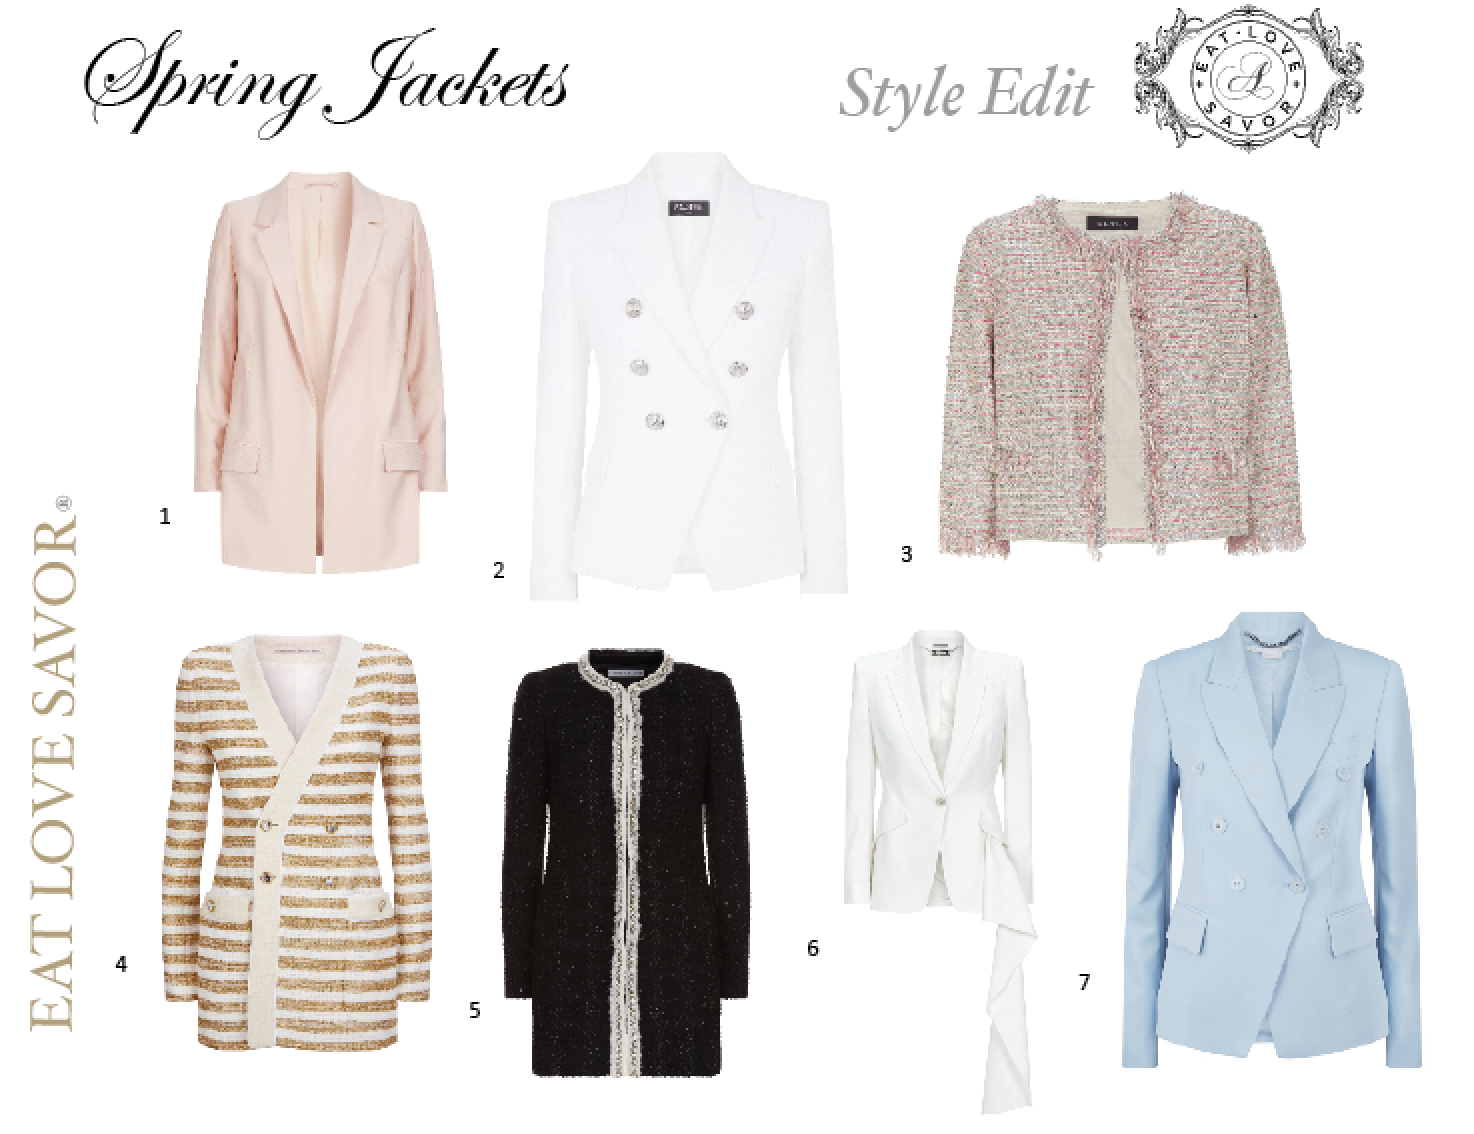 Style Edit – Out of Winter and into Spring Jackets